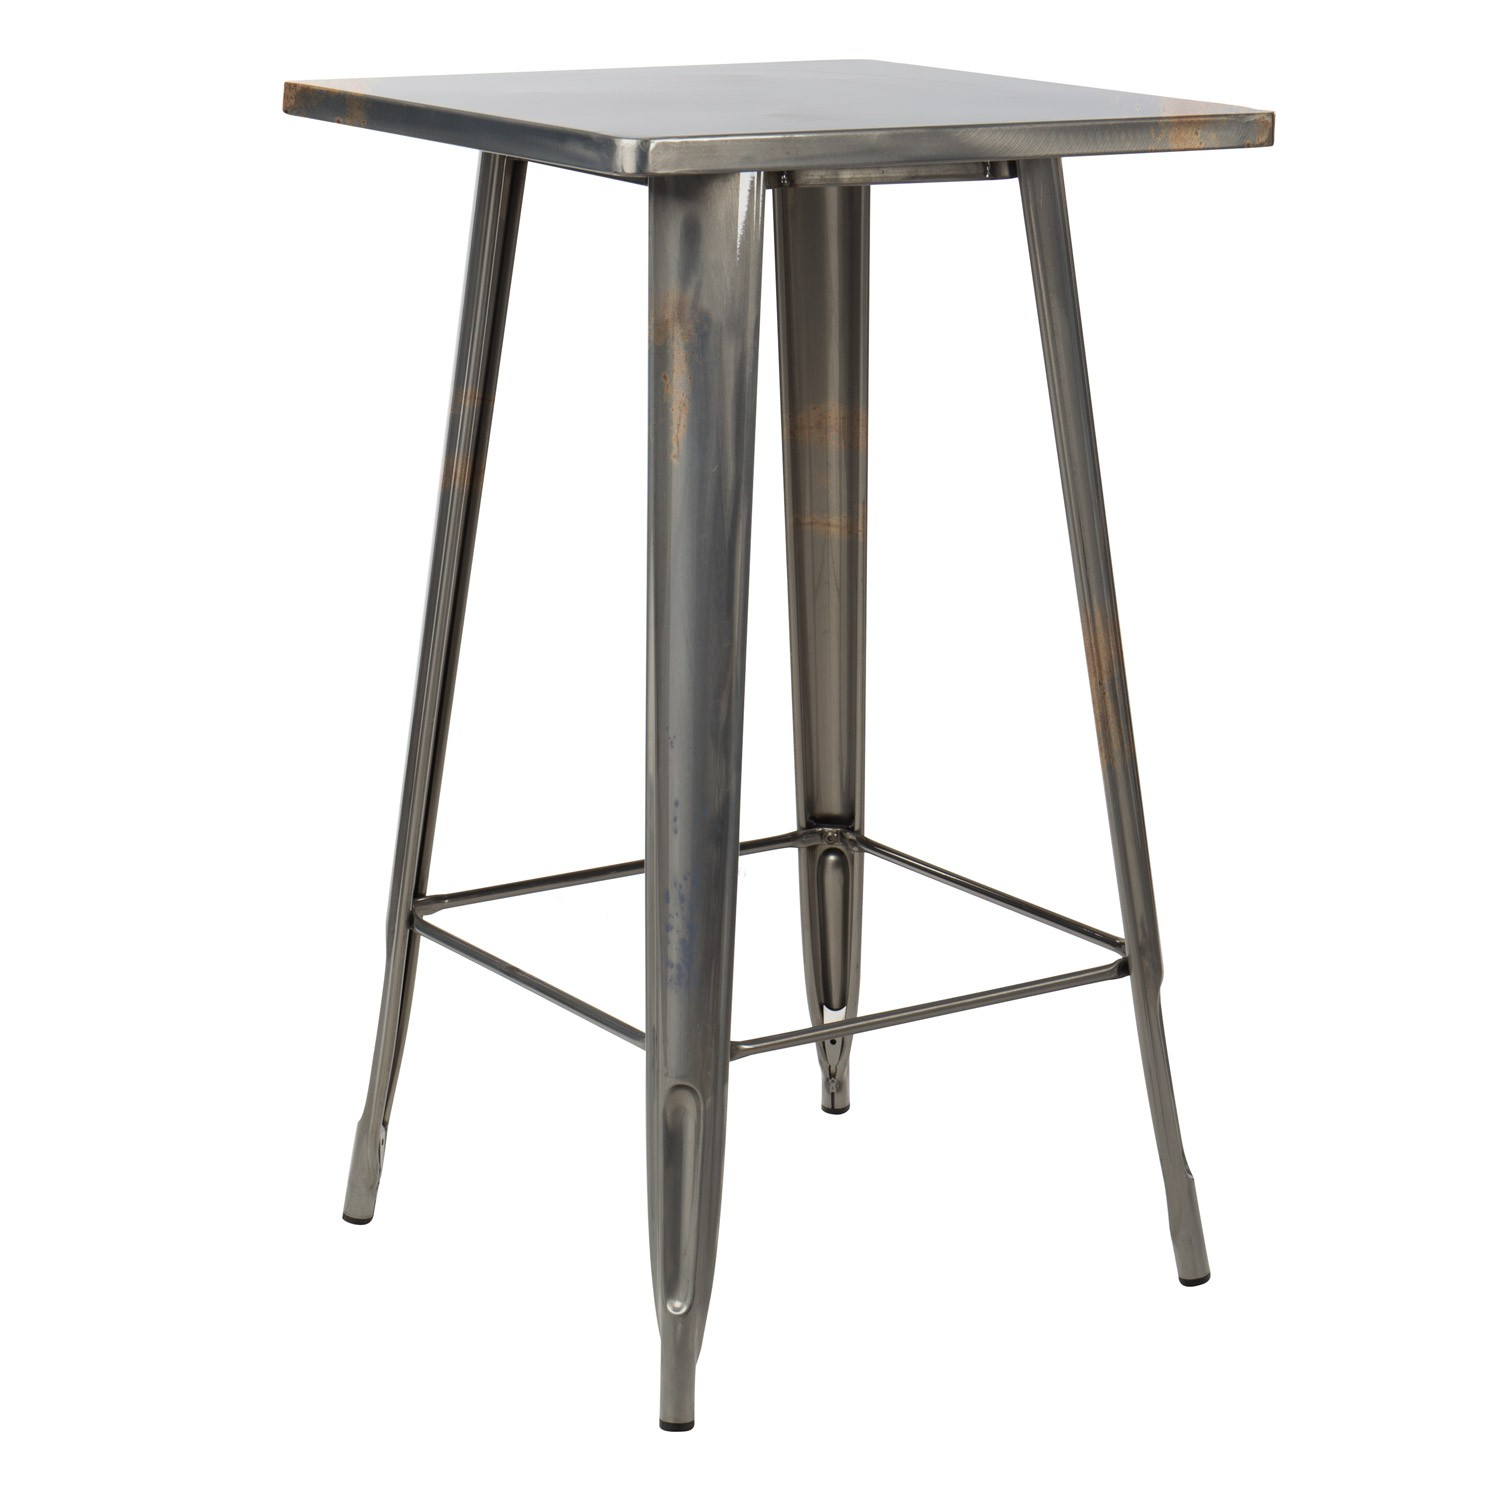 Brushed LIX High Table, gallery image 1